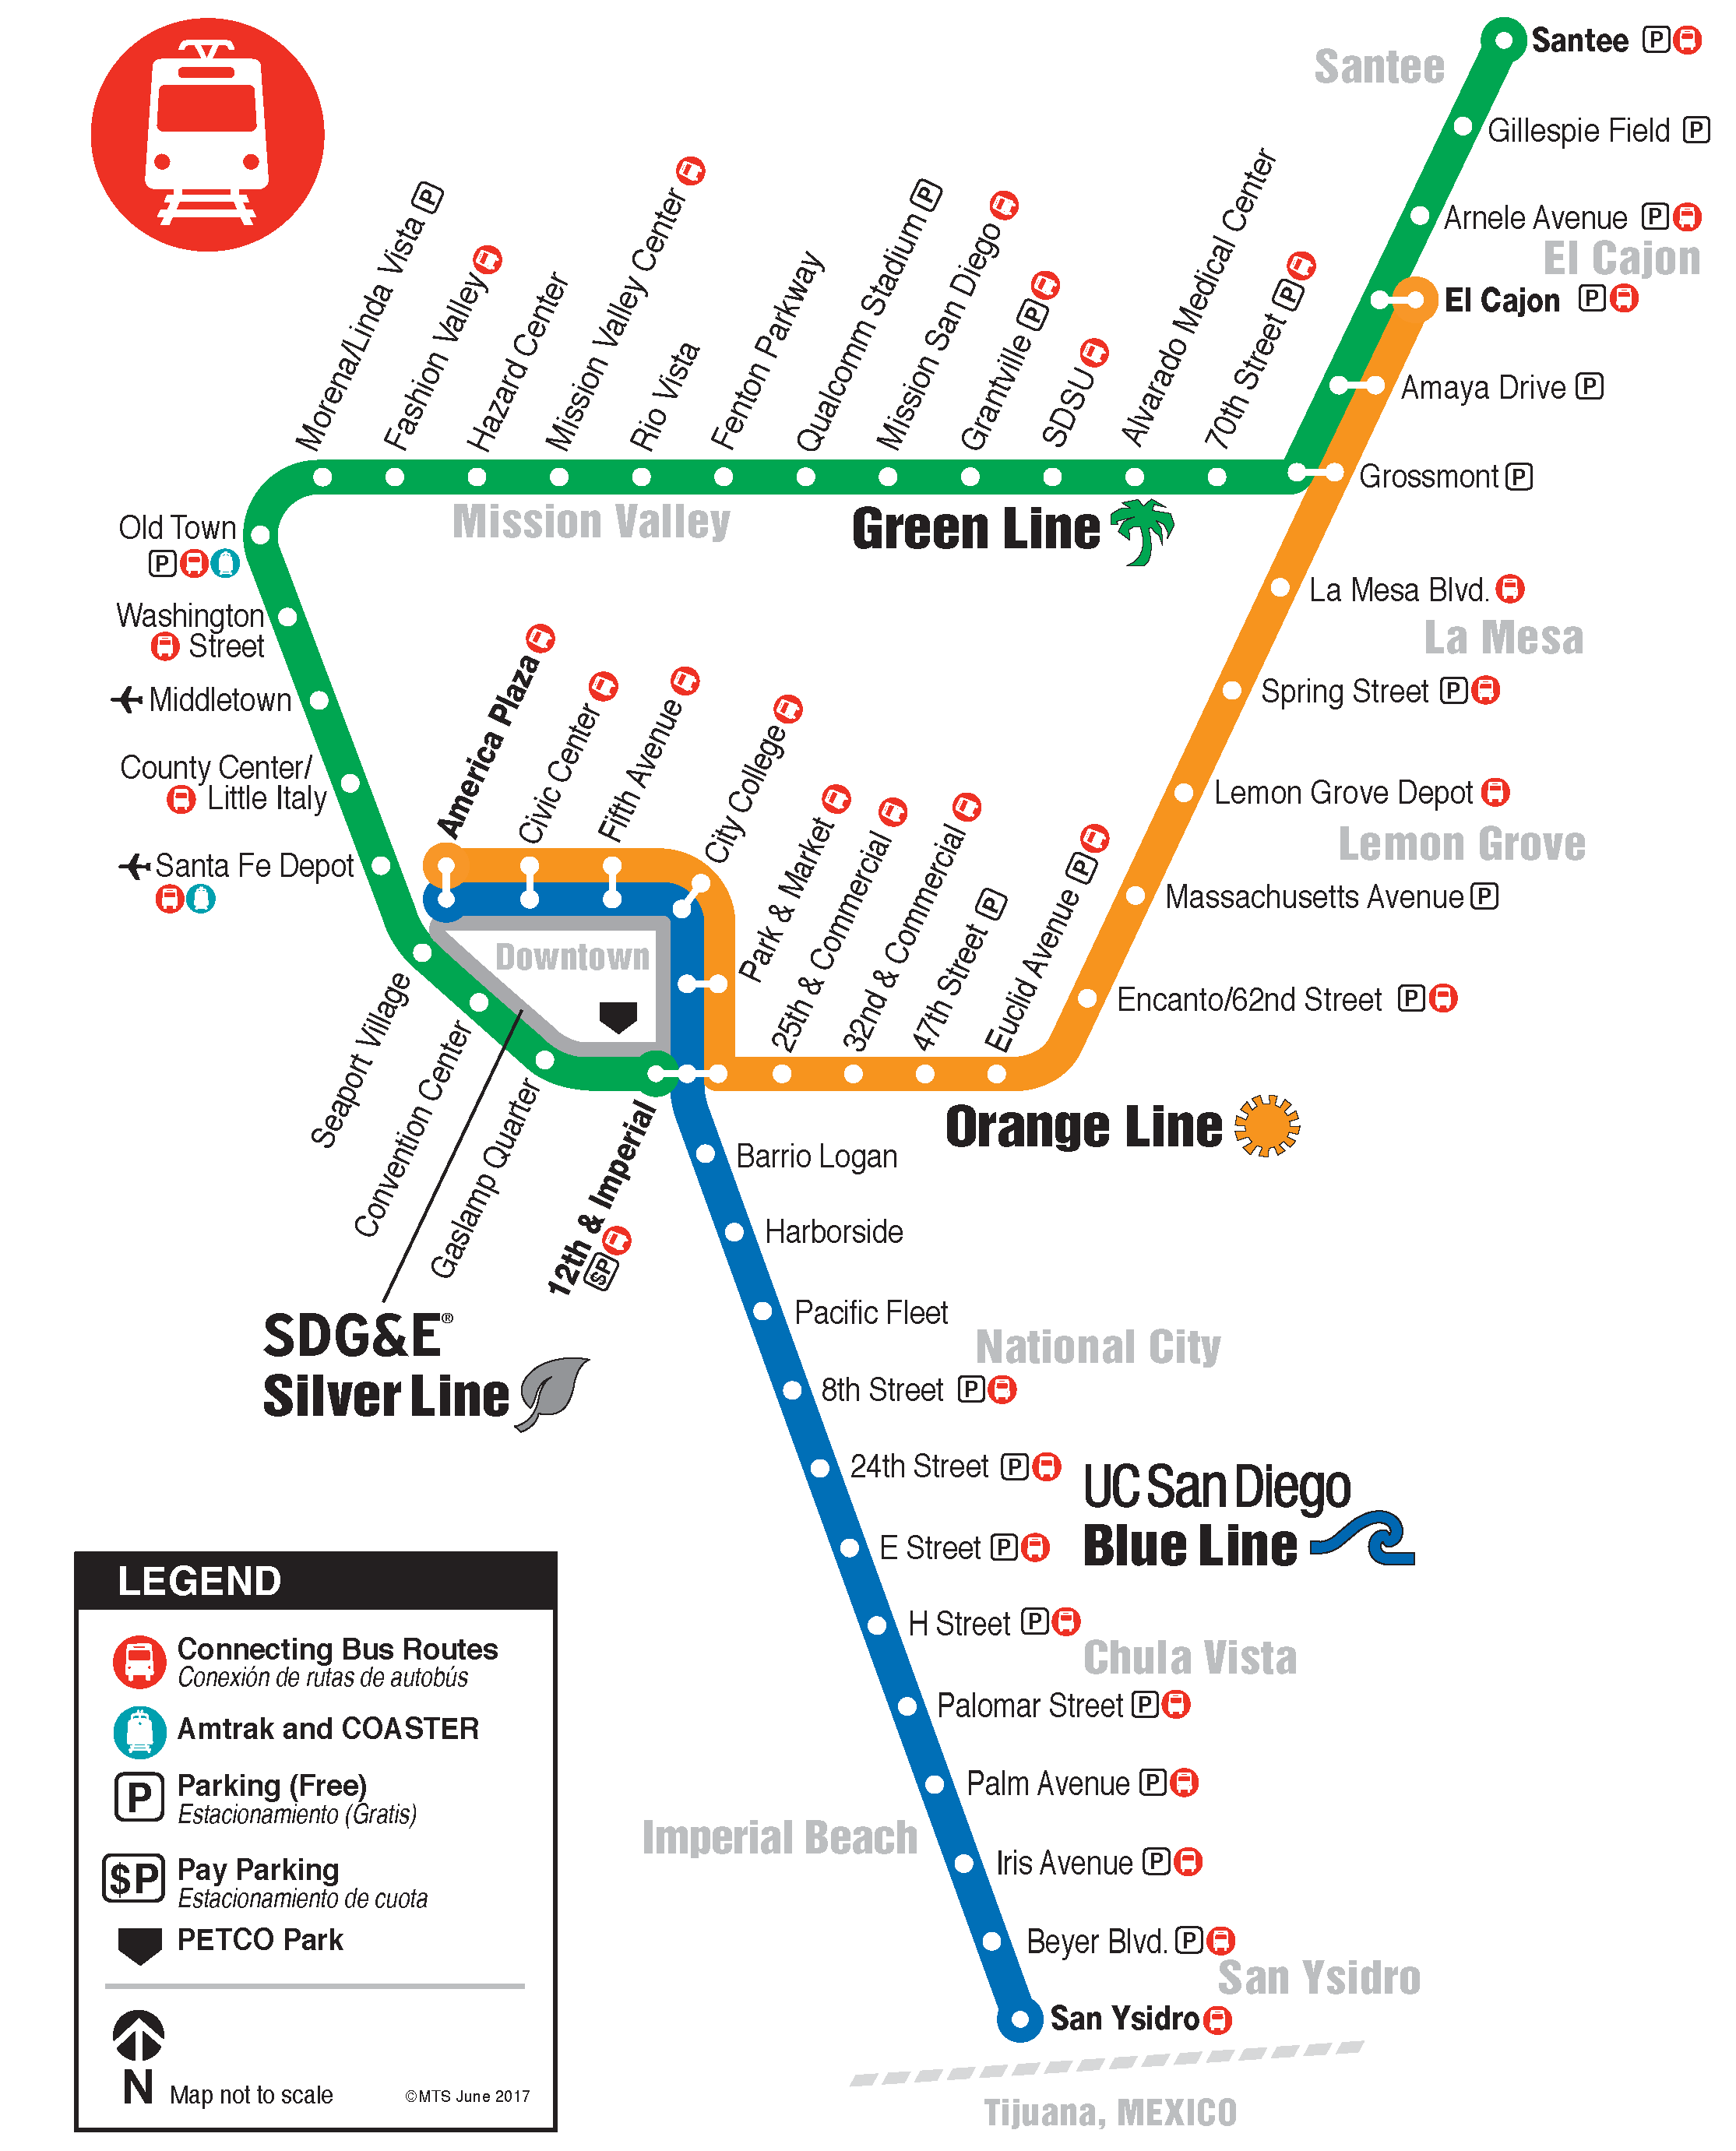 Trolley System Map | San go, San go map, San go travel on milwaukee district map, miami art district map, washington district map, brewery district map, la arts district map, noho arts district map, big island district map, lausd district map, indiana state fairgrounds map, miami design district map, san diego map, la fashion district map, london theatre district map, theater district map, baltimore district map, san bernardino county district map, cancun hotel district map, orlando district map, mission valley map, marina district map,